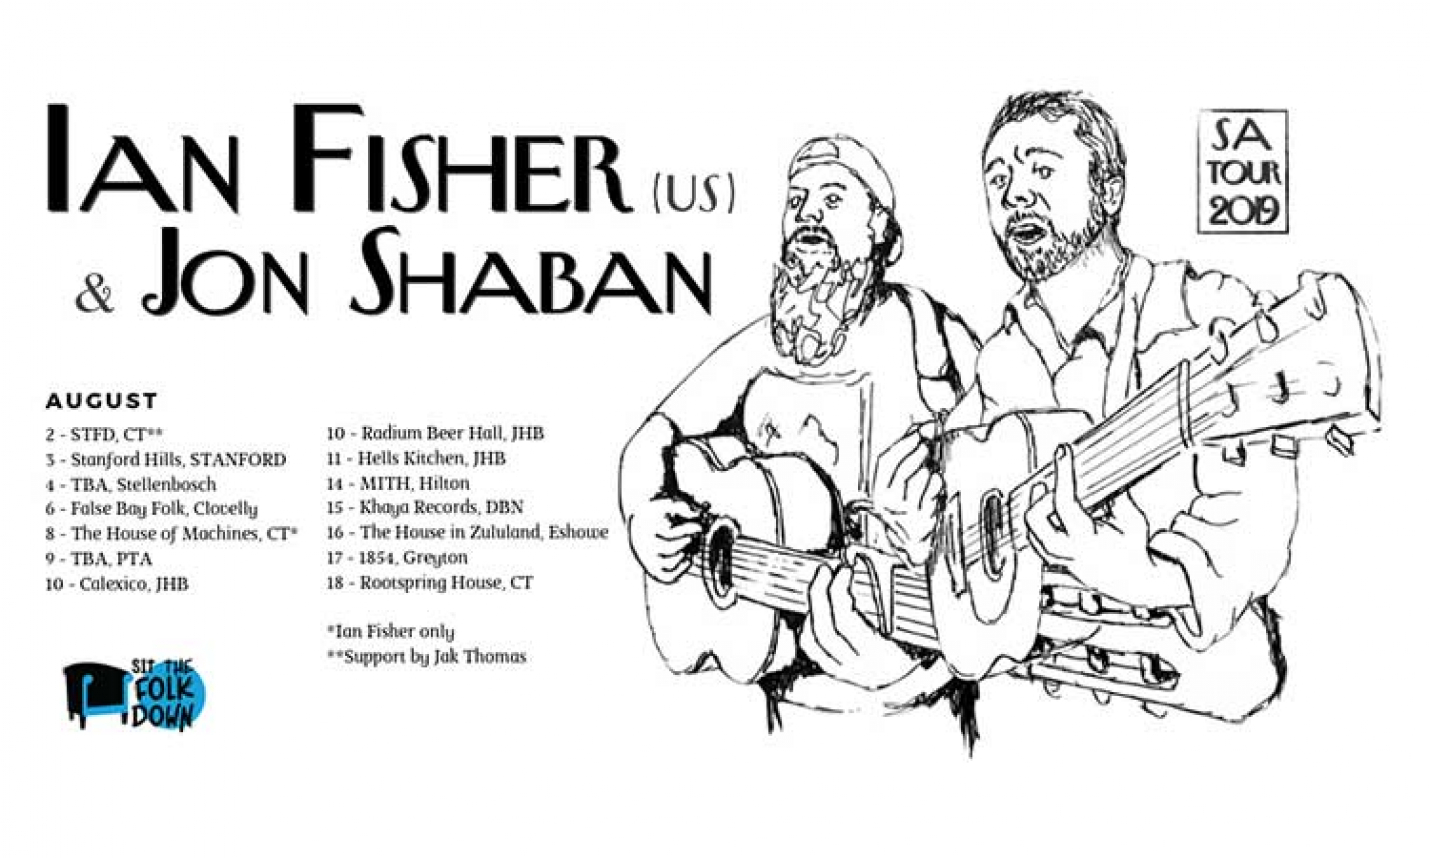 Jon Shaban and Ian Fisher Announce co-headlining South African tour